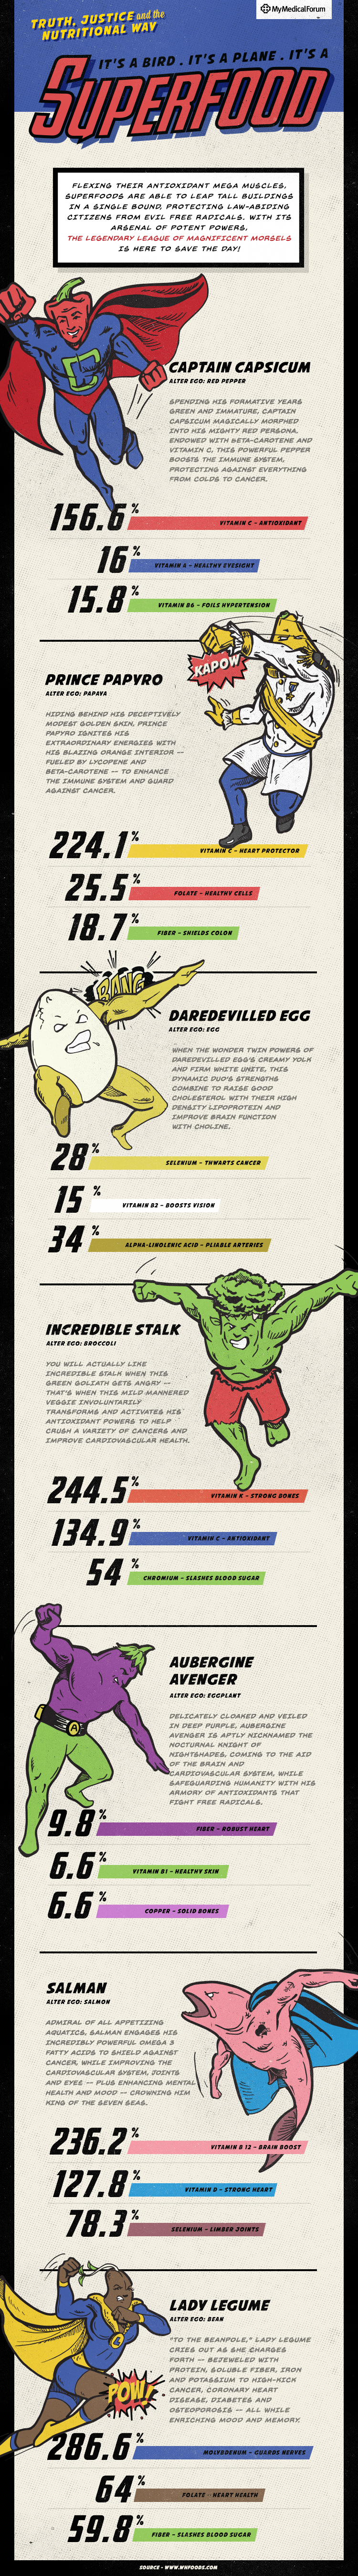 Infographic-superfoods-my-medical-forum